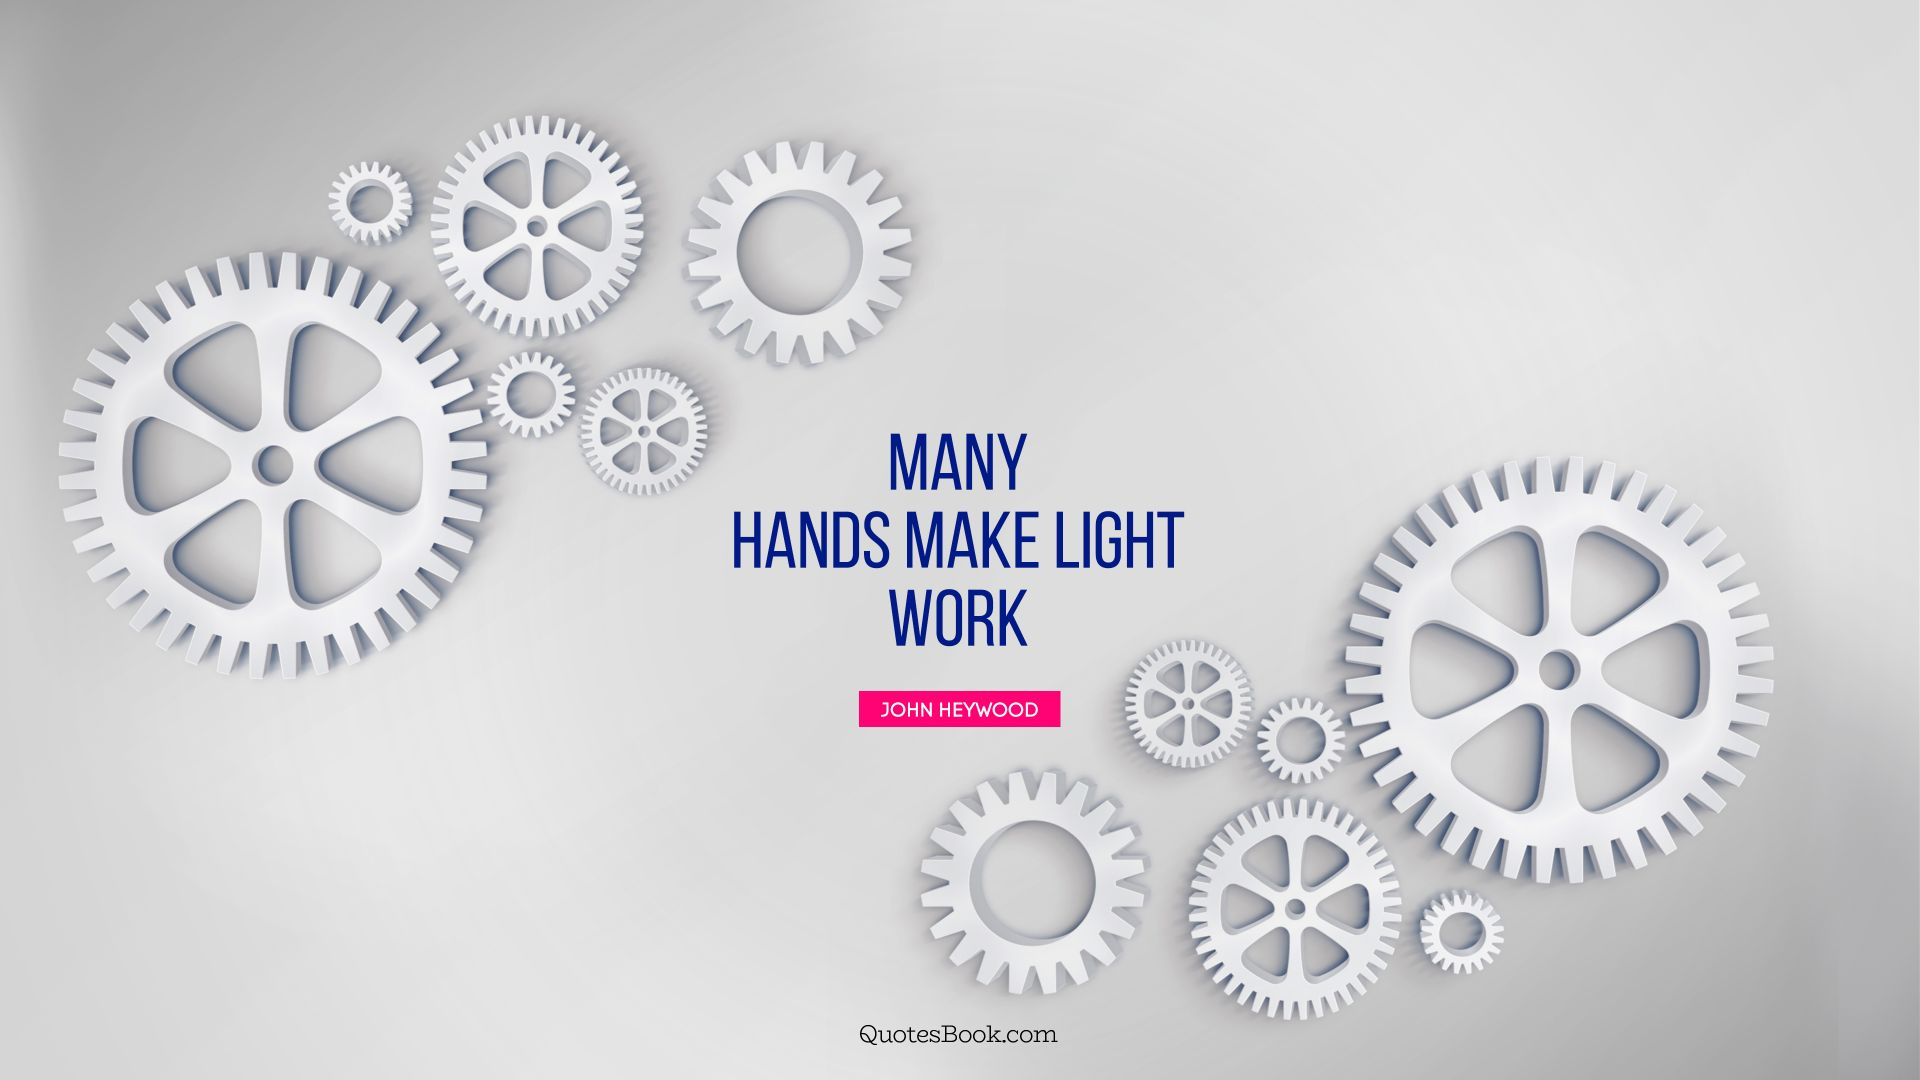 Many hands make light work. - Quote by John Heywood